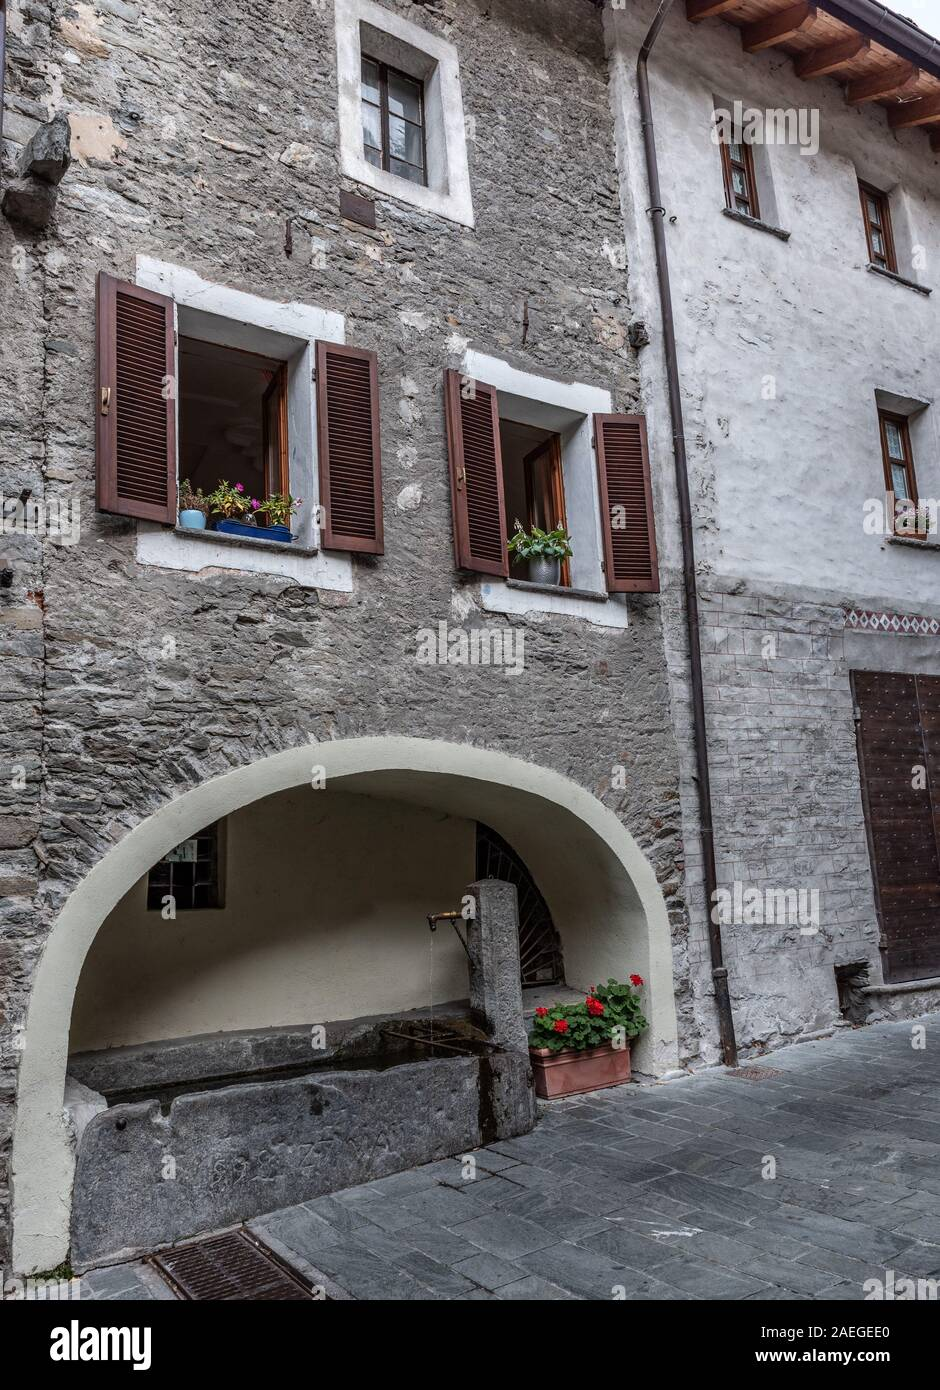 Ancient fountain in the medieval village of Bard in Valle D'Aosta, vertical image Stock Photo